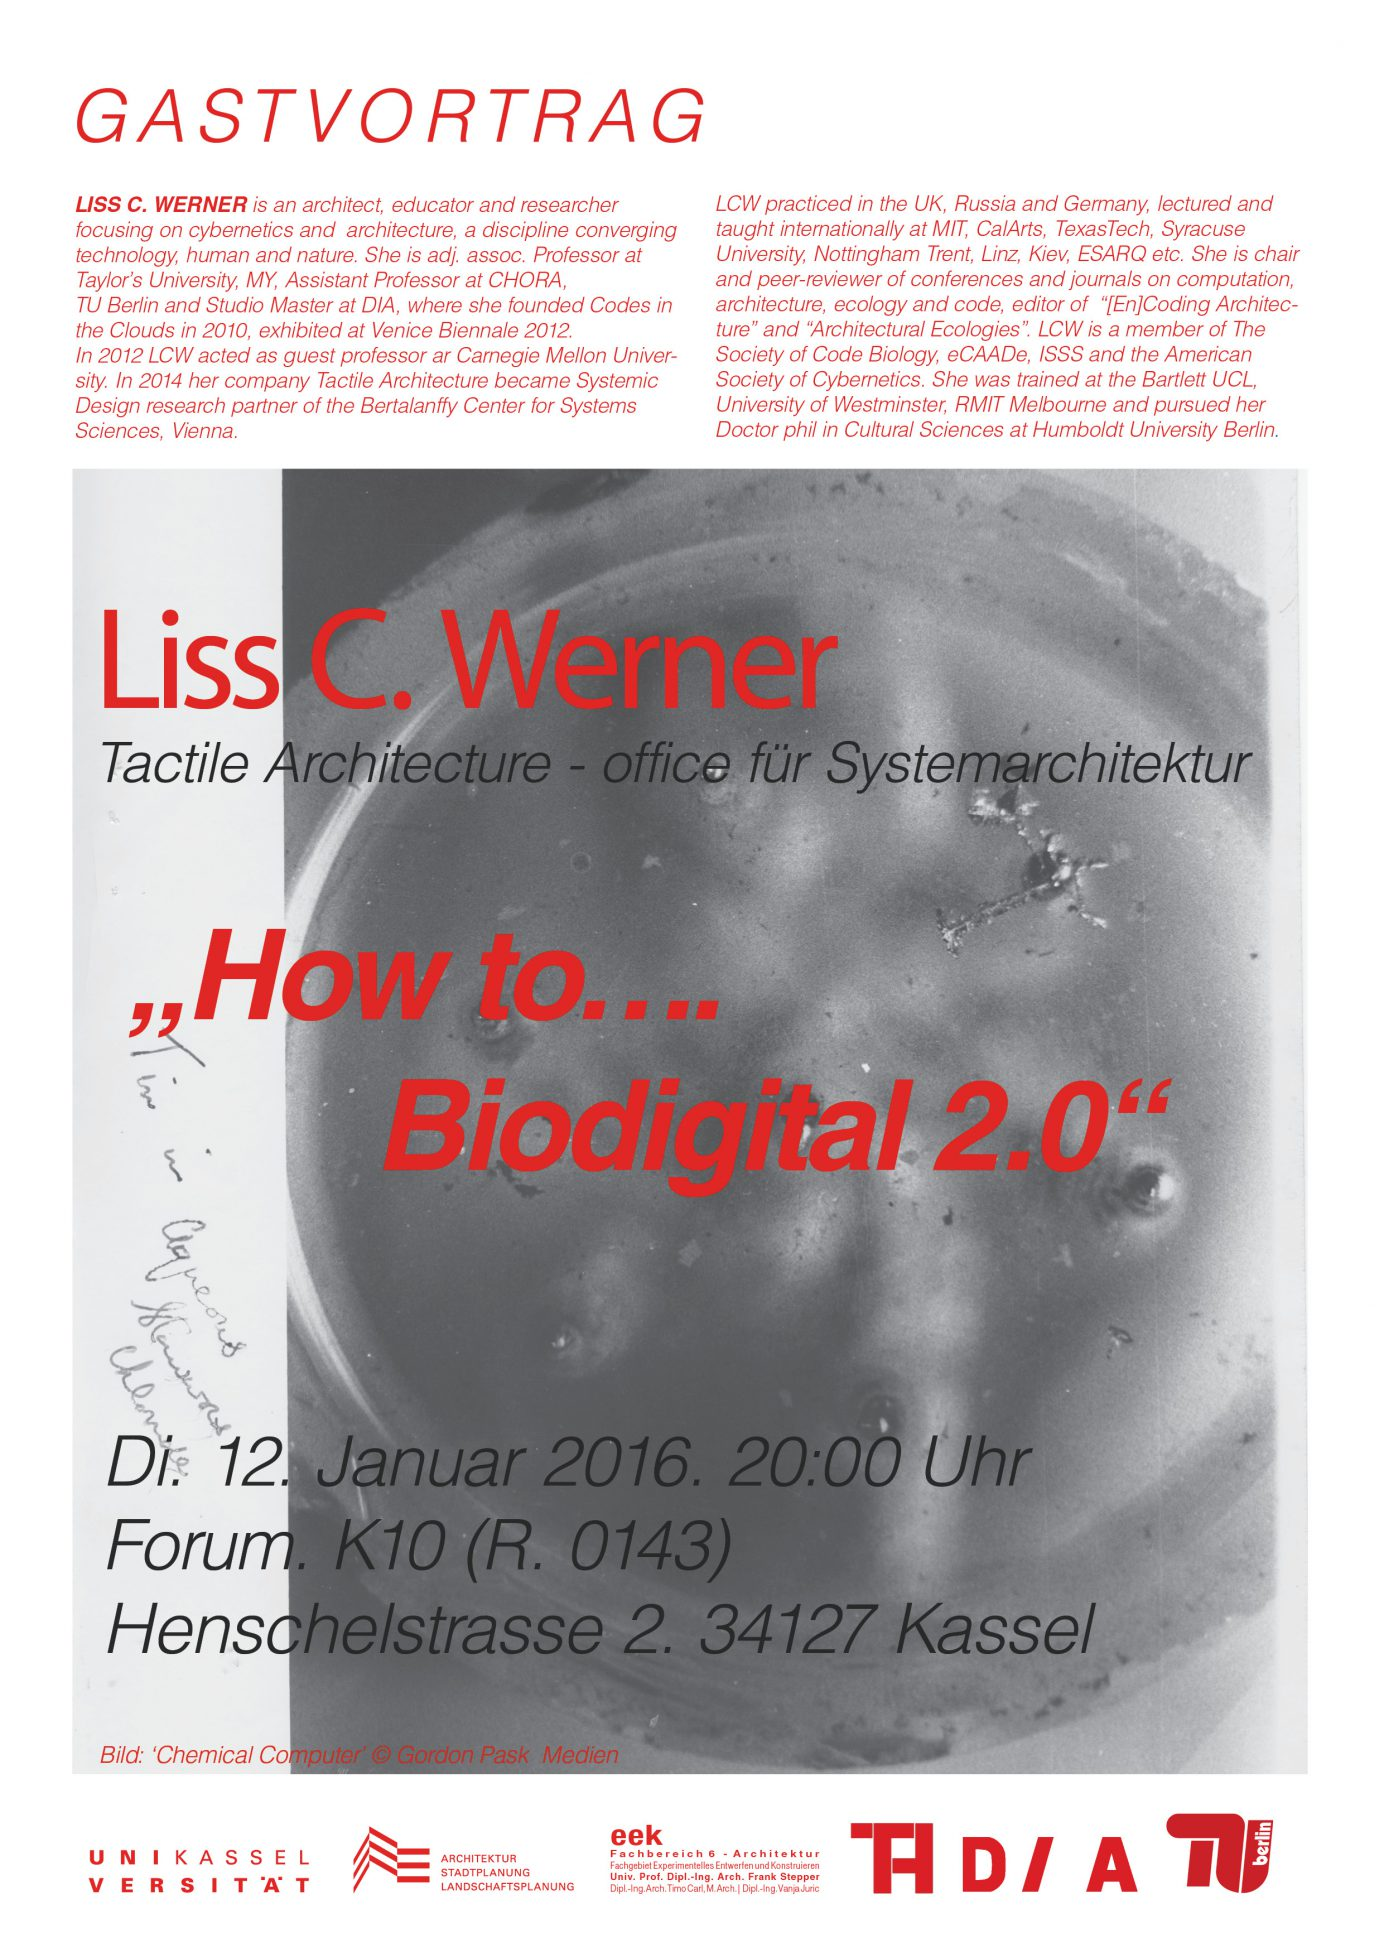 Uni_Kassel_EEK_How_to_Biodigital_LissCWerner_2016